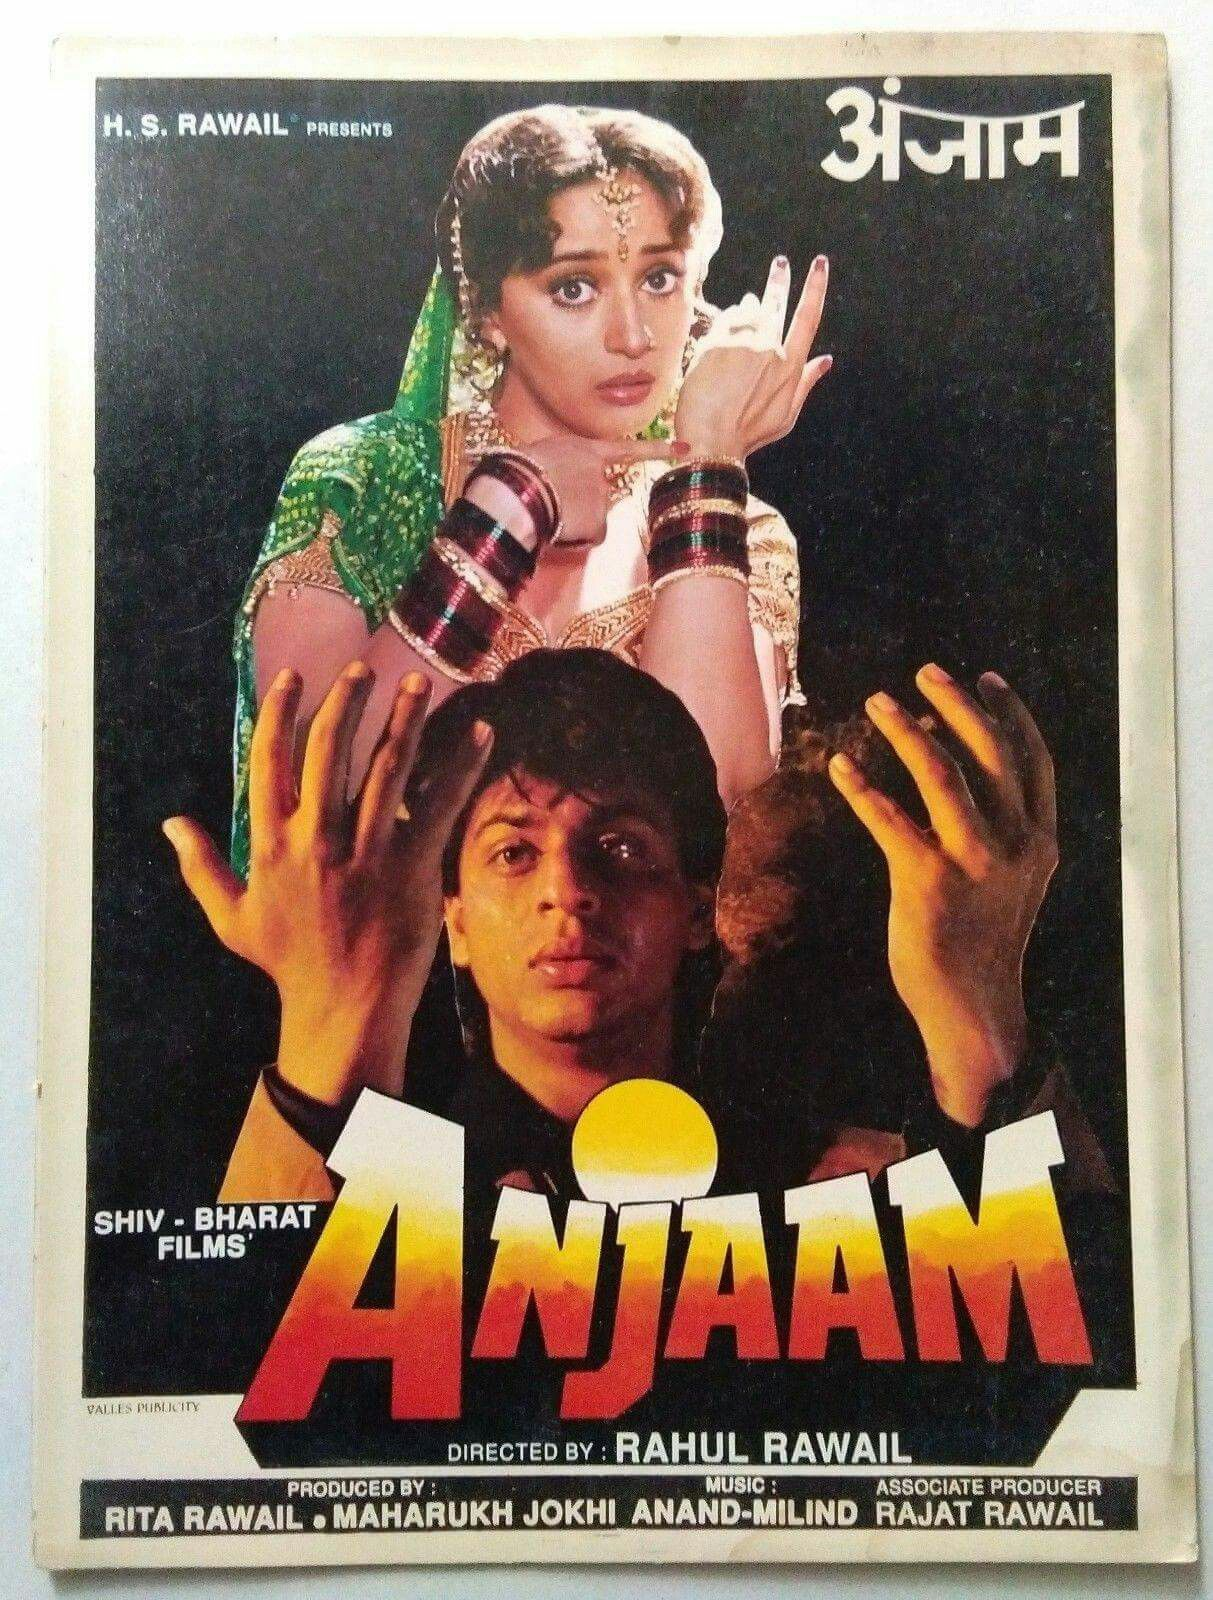 Anjaam poster | Free movies online, Movies, Bollywood posters